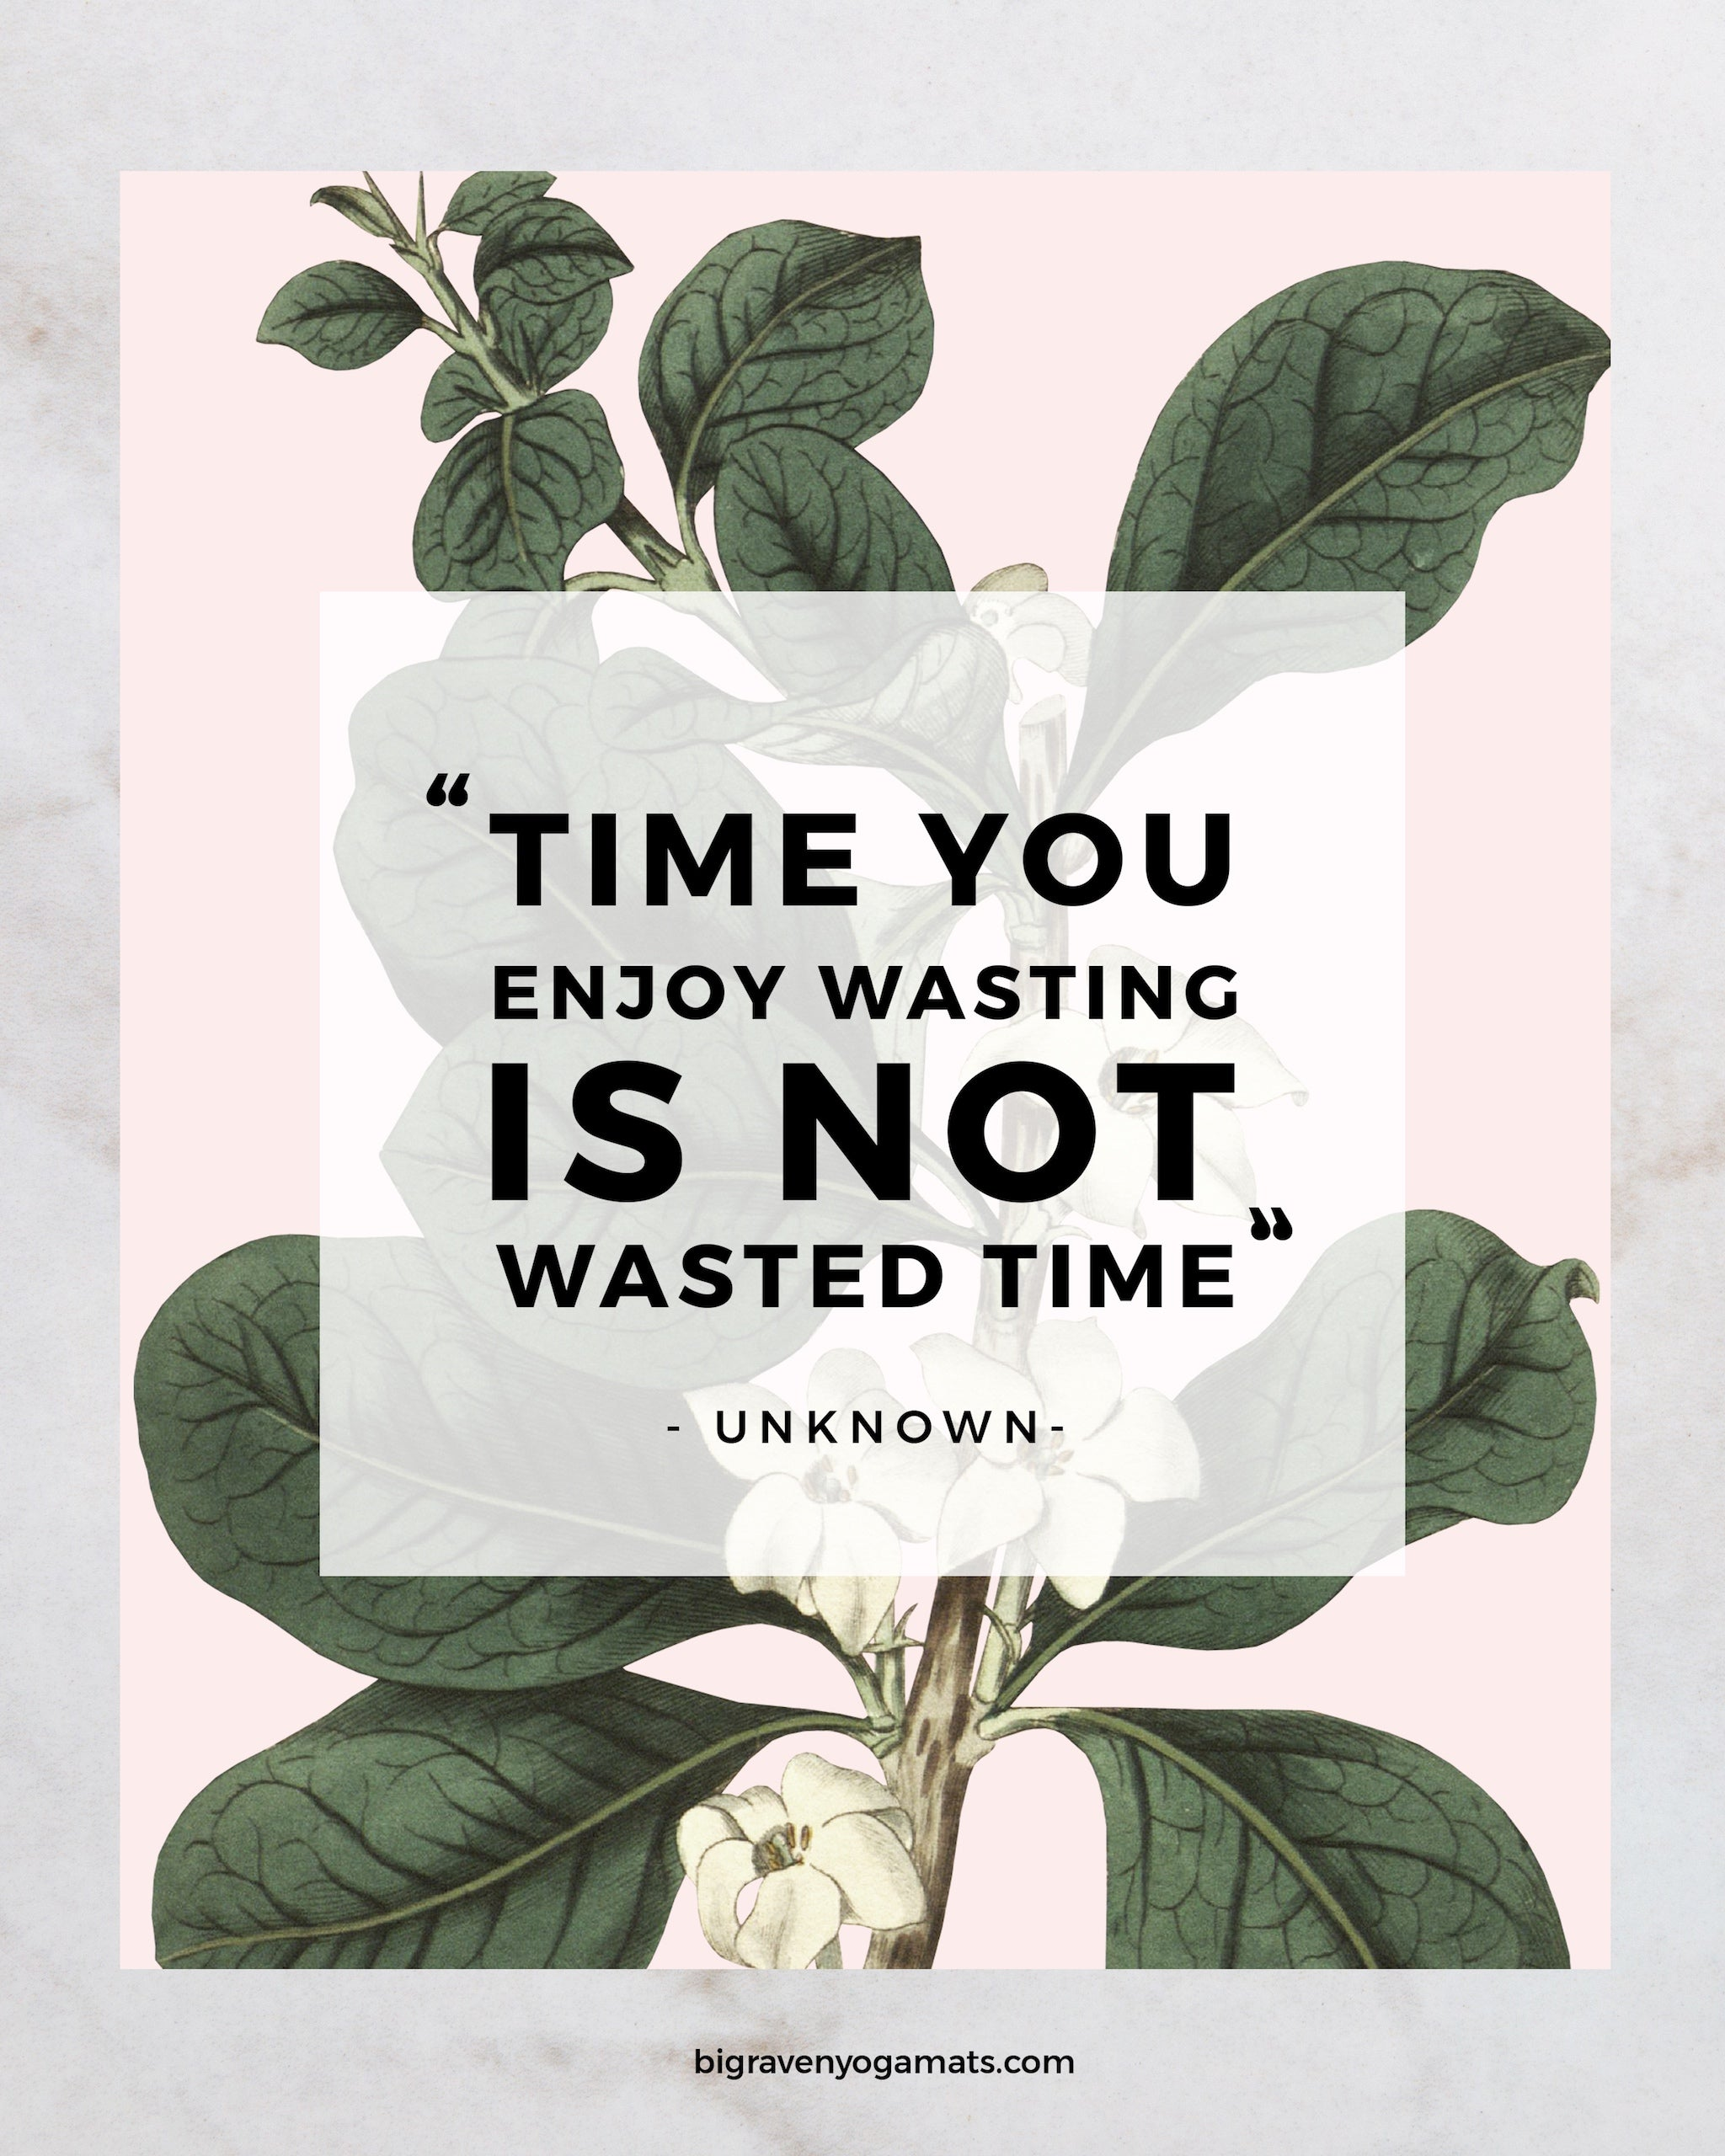 Quote: Time you enjoy wasting is not wasted time. Anonymous.